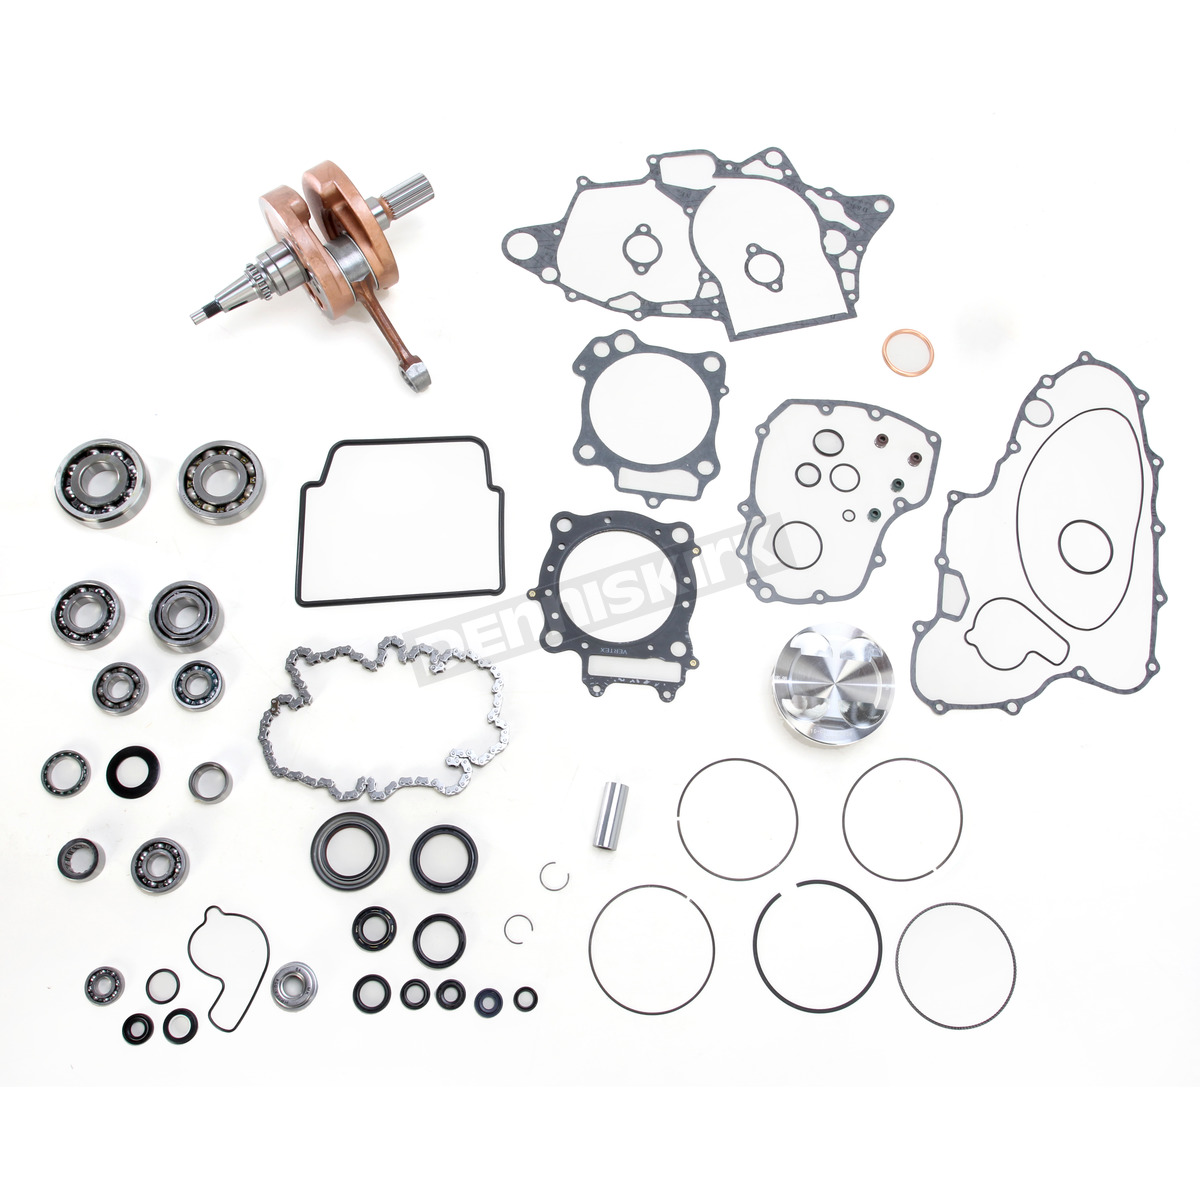 Wrench Rabbit Complete Engine Rebuild Kit 96mm Bore